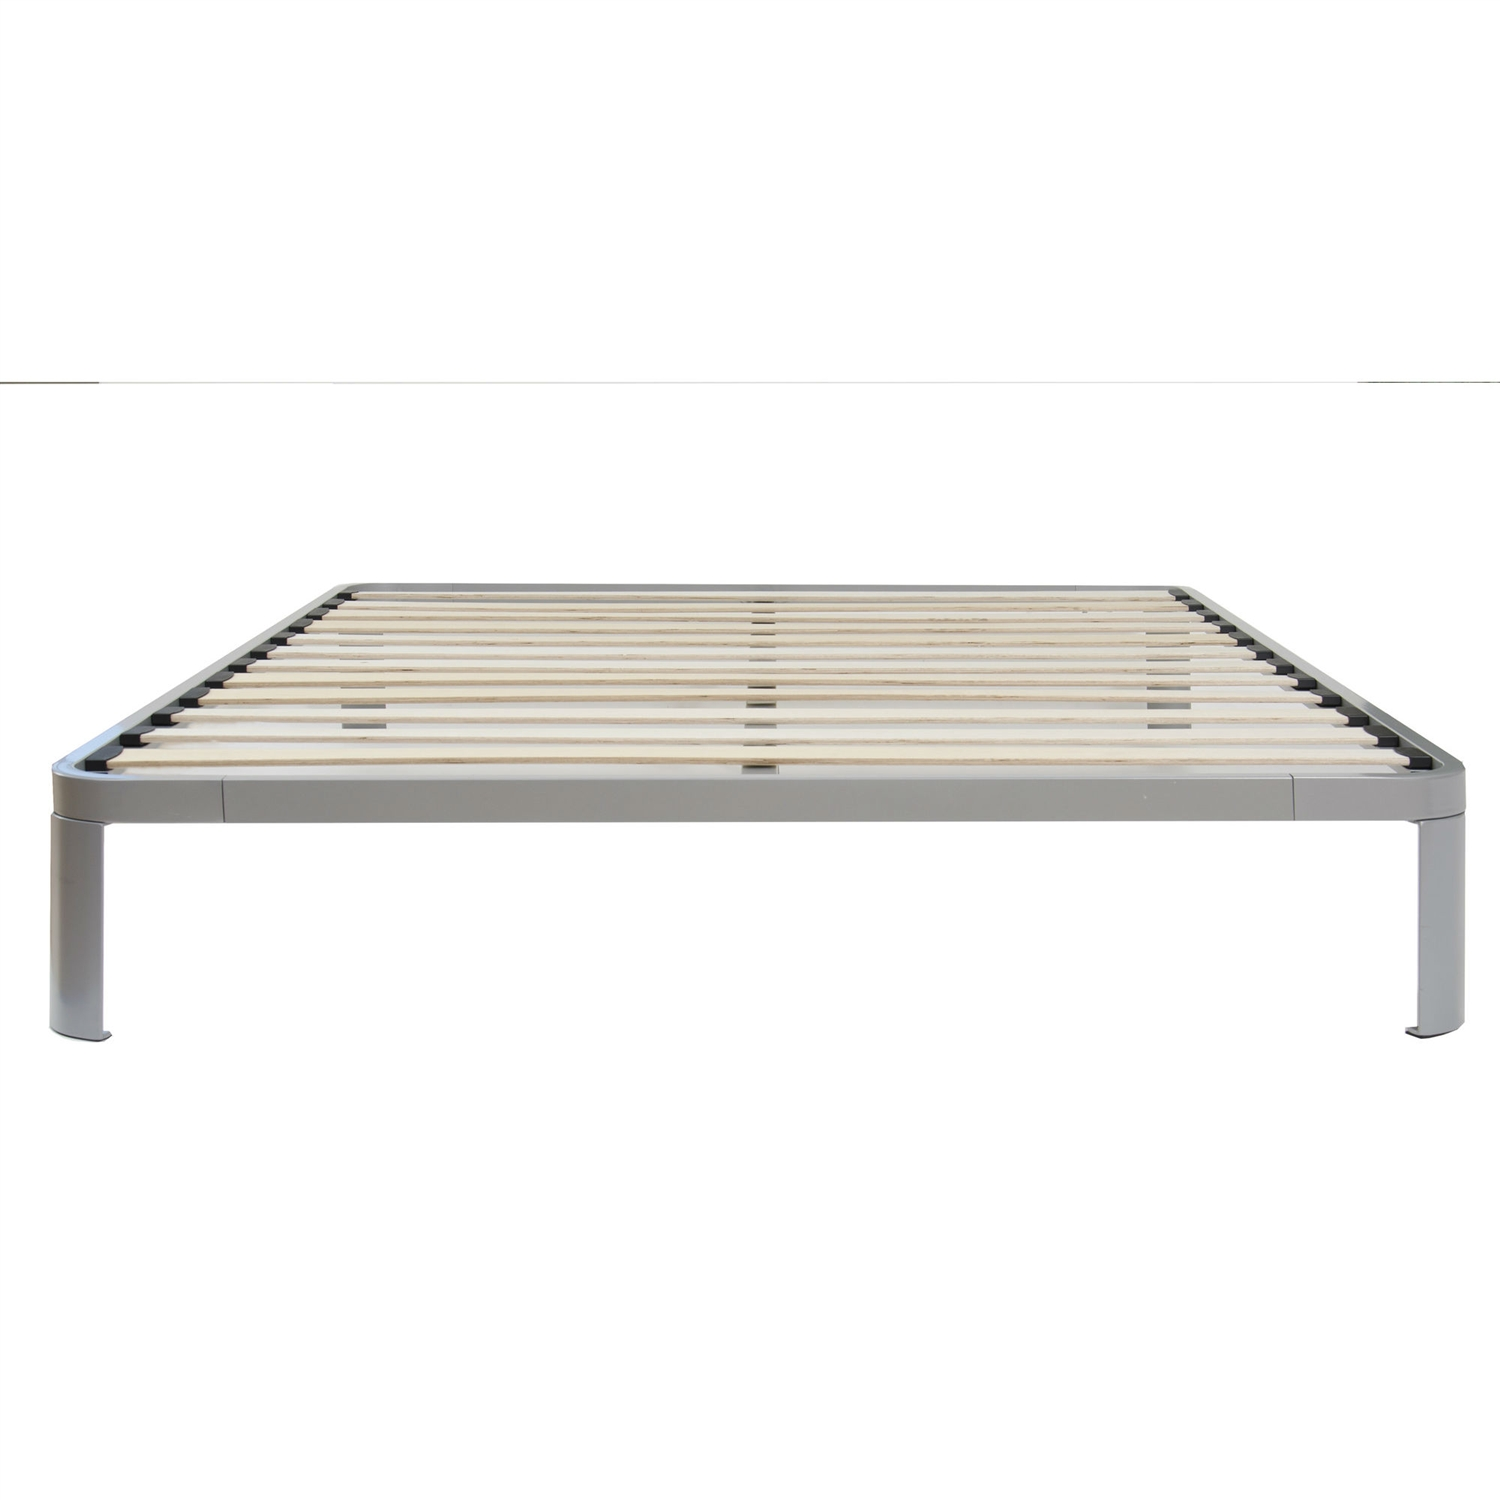 bedroom size with bed wood home metal slats bath platform queen frame garden tools mattress foundation